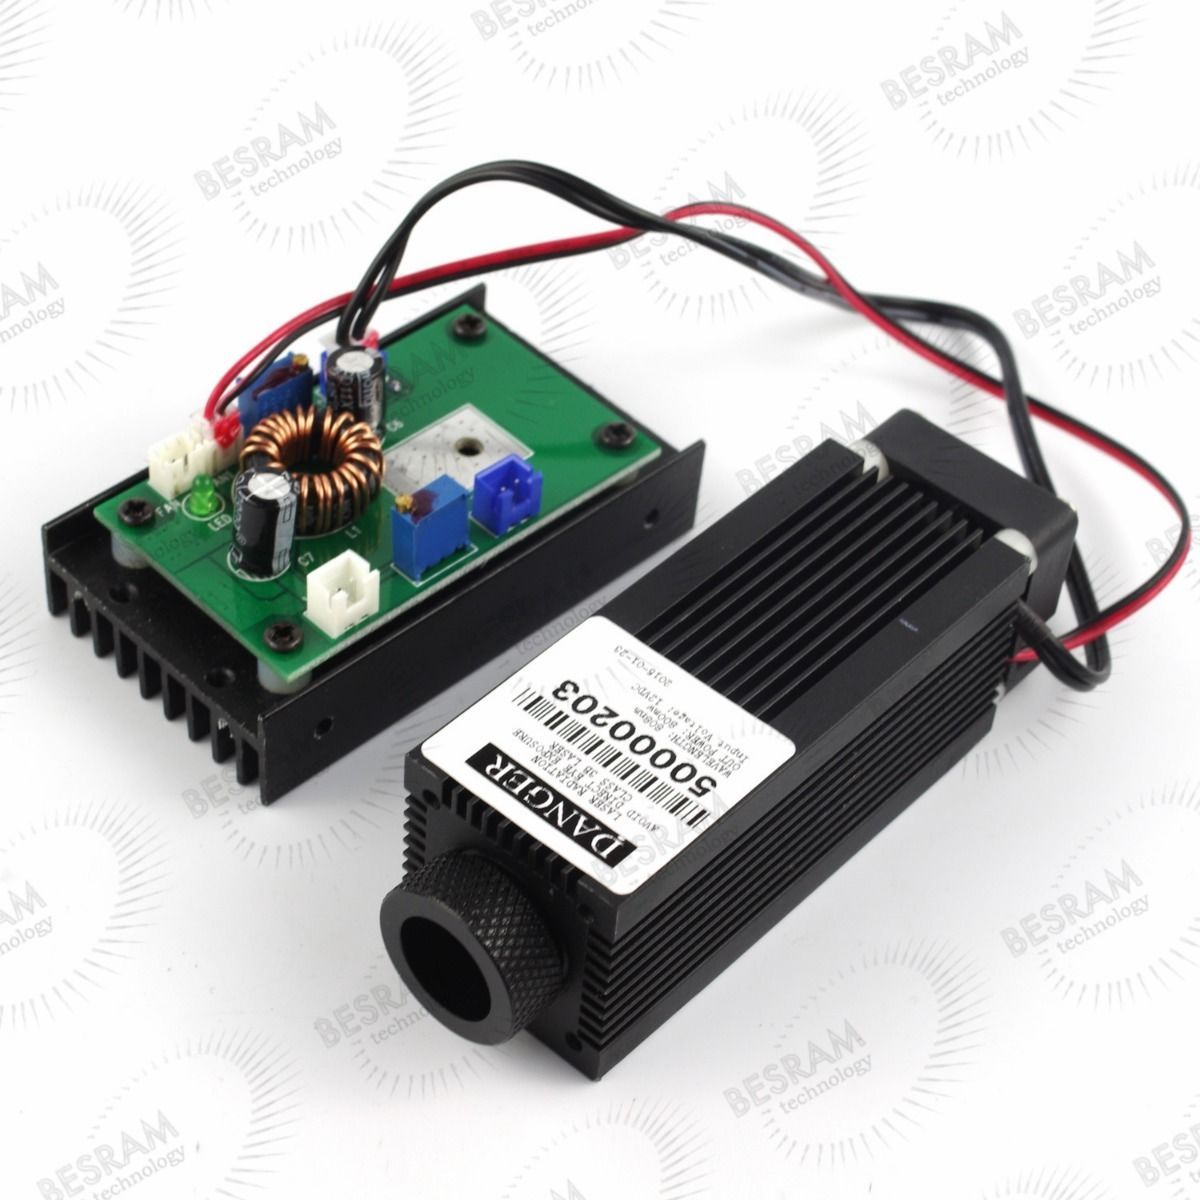 Focusable 1.6W 980nm IR Infrared Laser Diode Module w/TTL